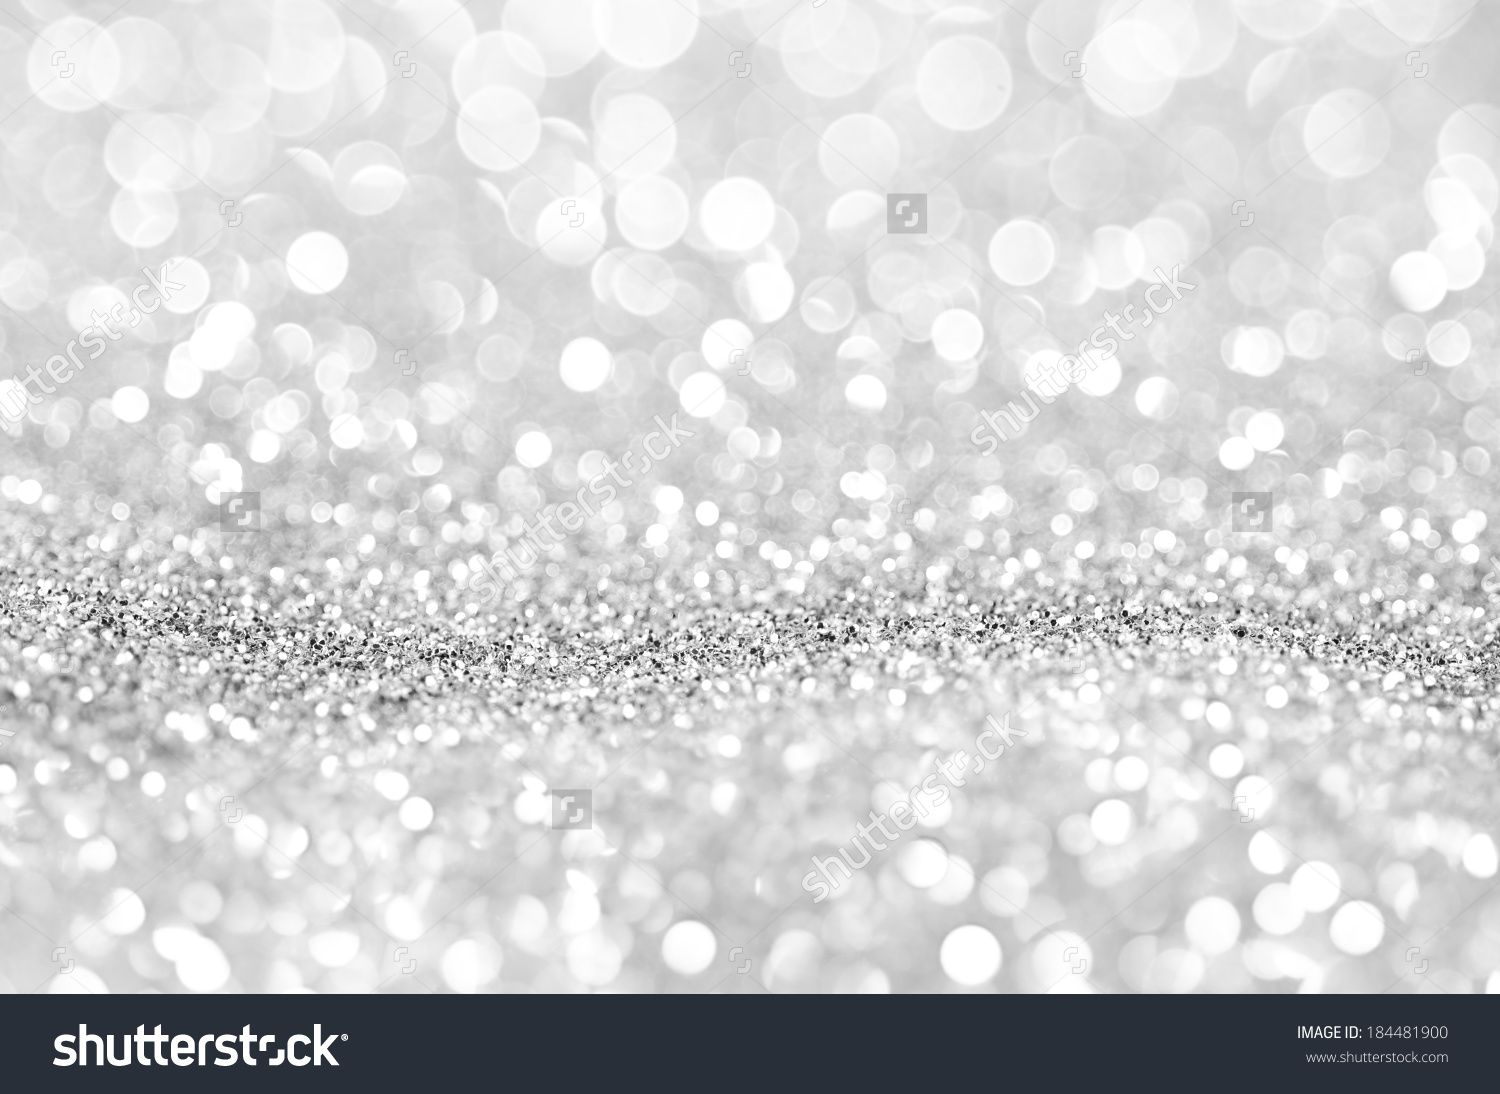 bokeh abstract background wallpaper silver diamond for wedding     in 2019